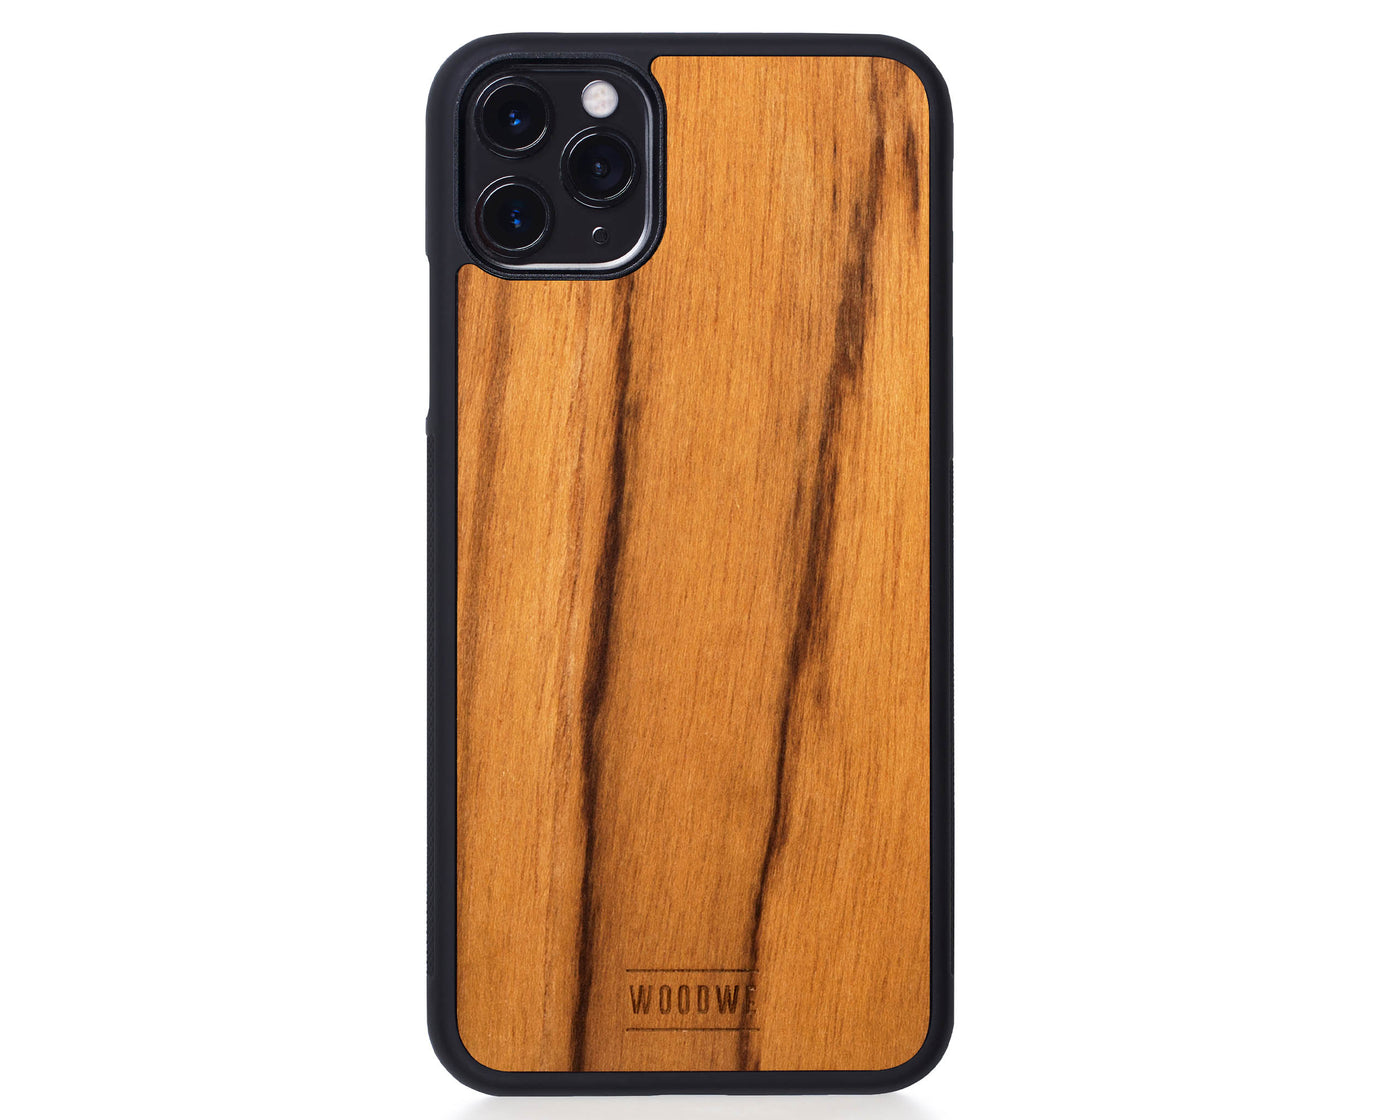 IPHONE WOOD CASE